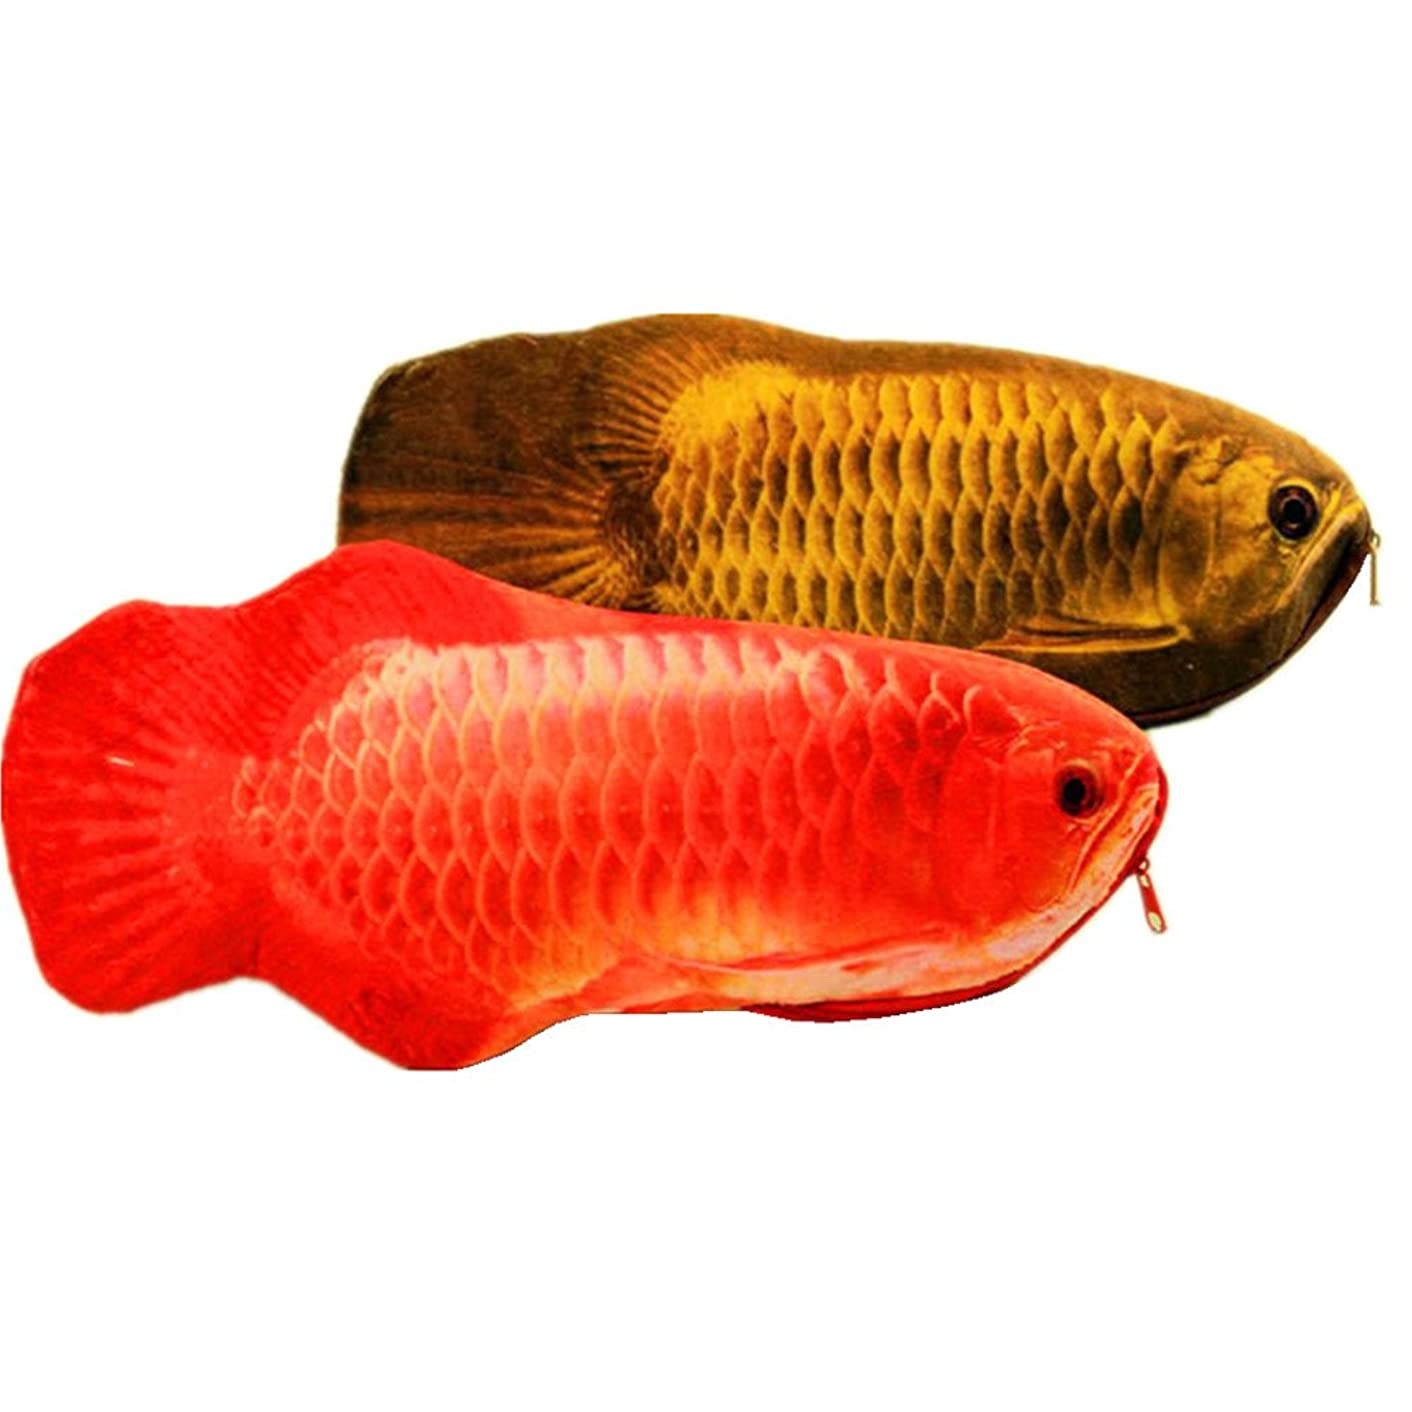 Funnylive Simulation Fish Pencil Case Crucian Carp Stationery Bags Creative Coin Purse Set of 2